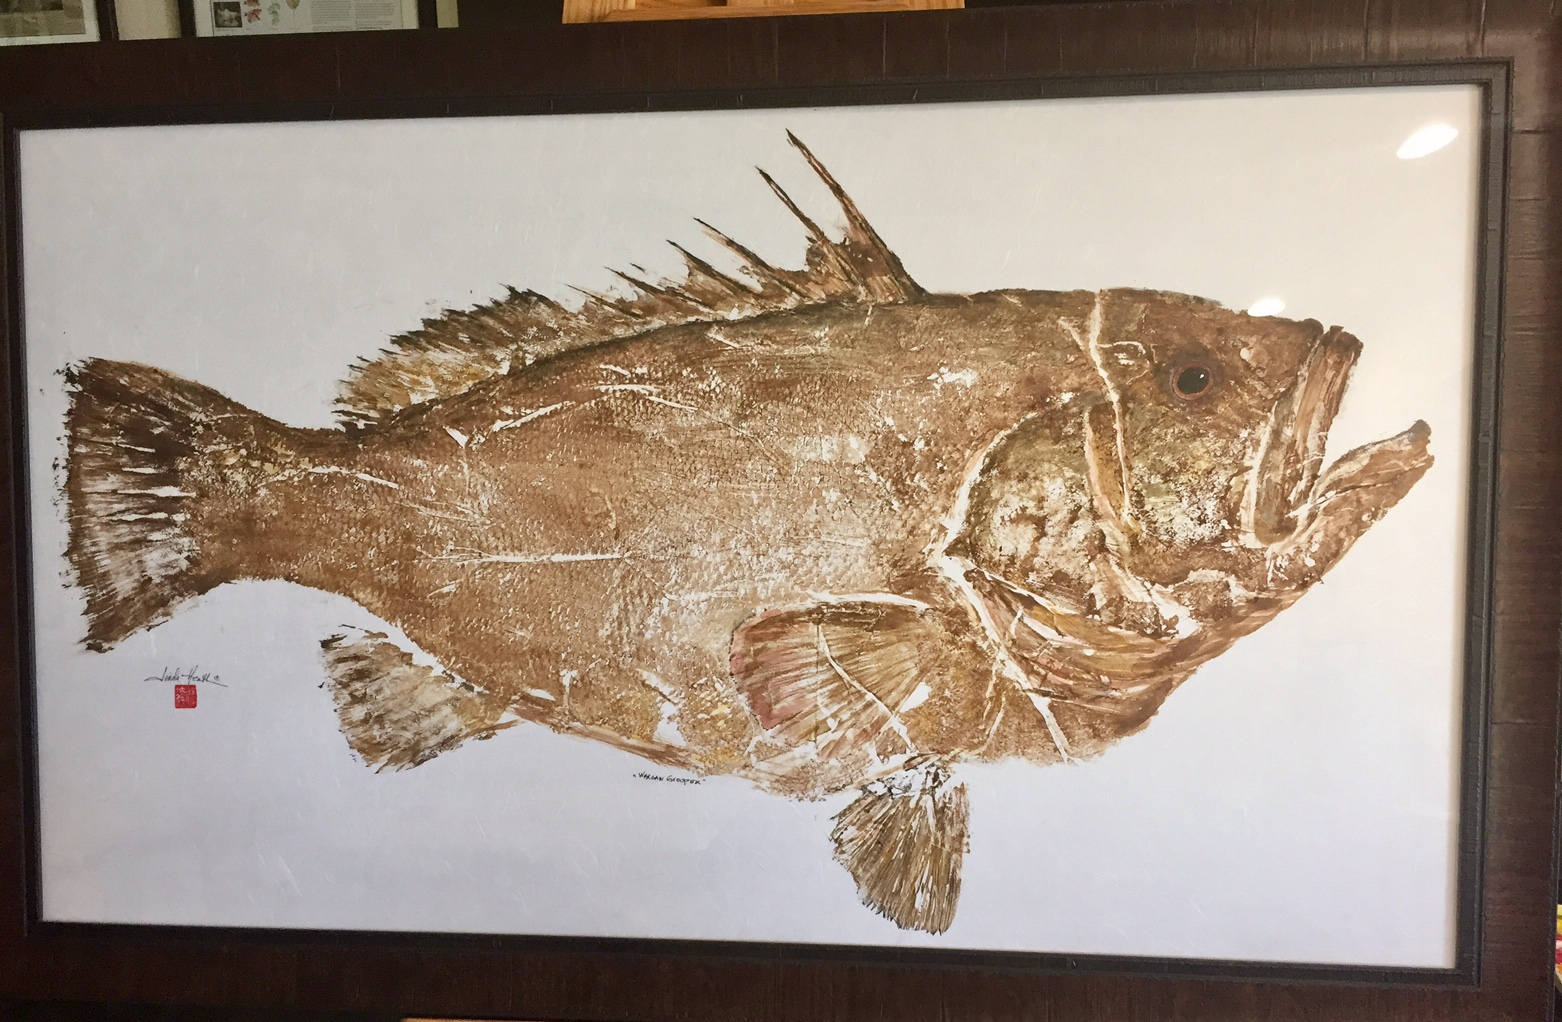 Original Warsaw Grouper By Linda Heath